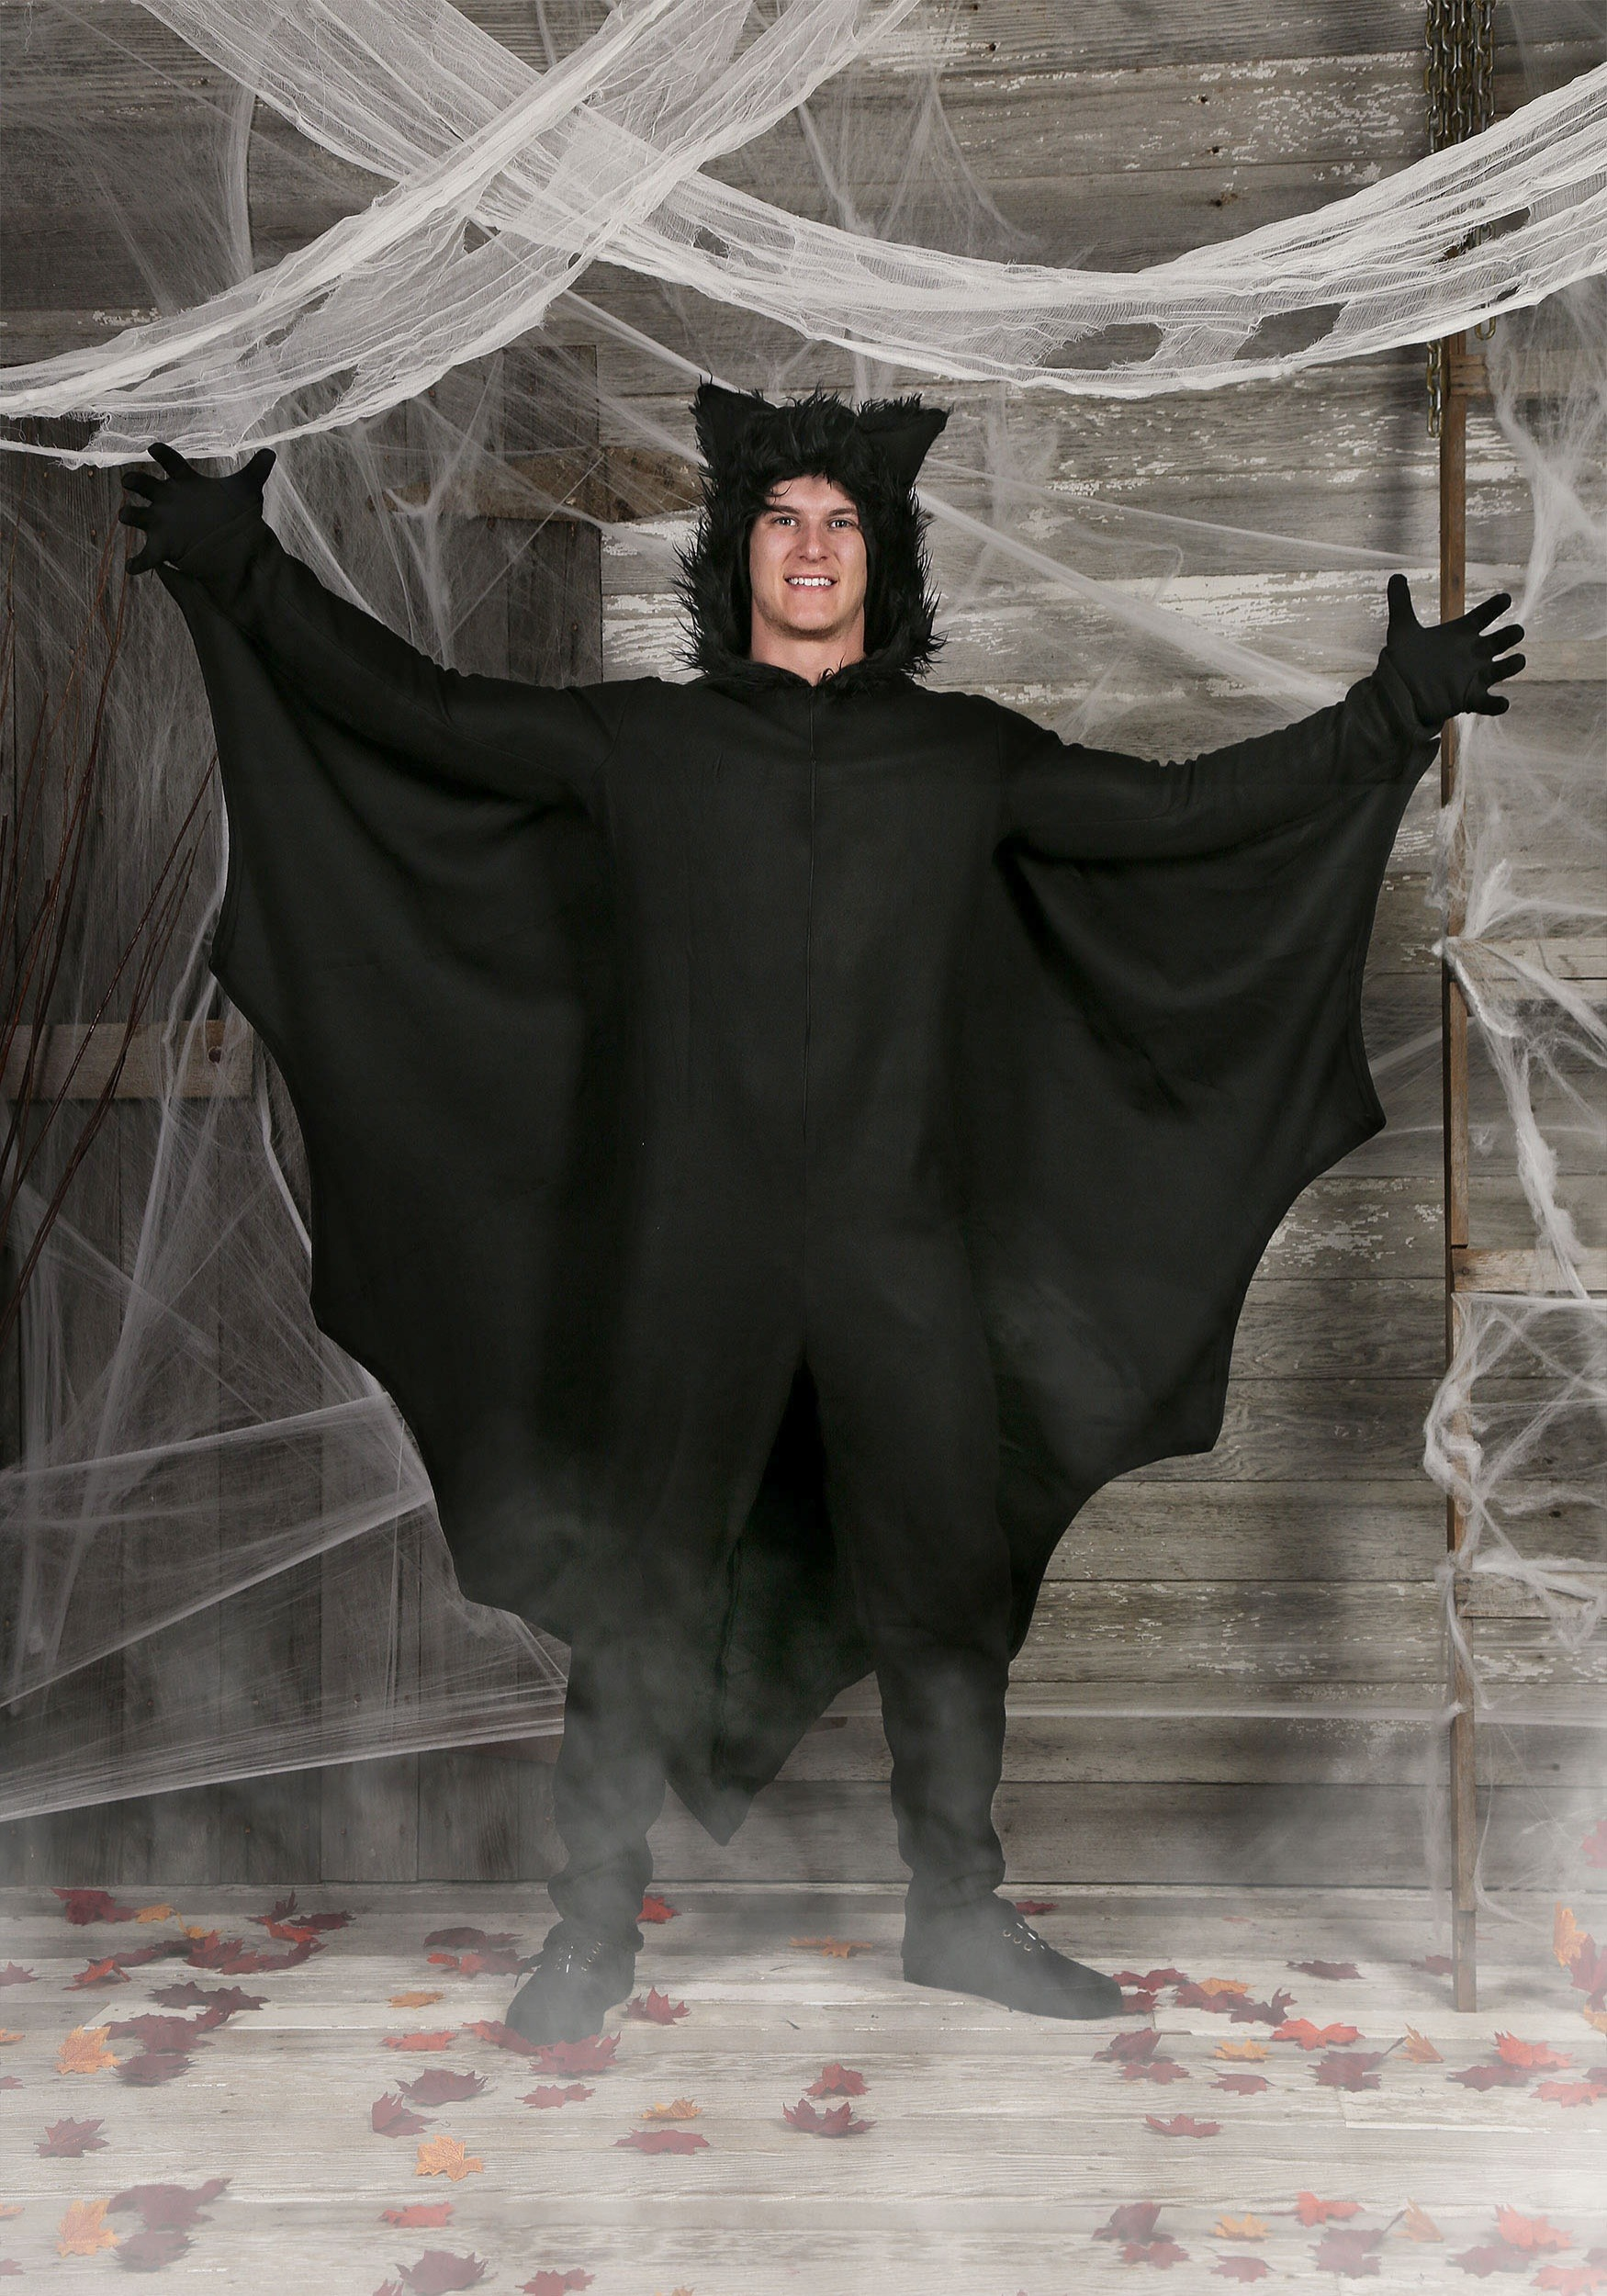 Plus Fleece Bat Costume